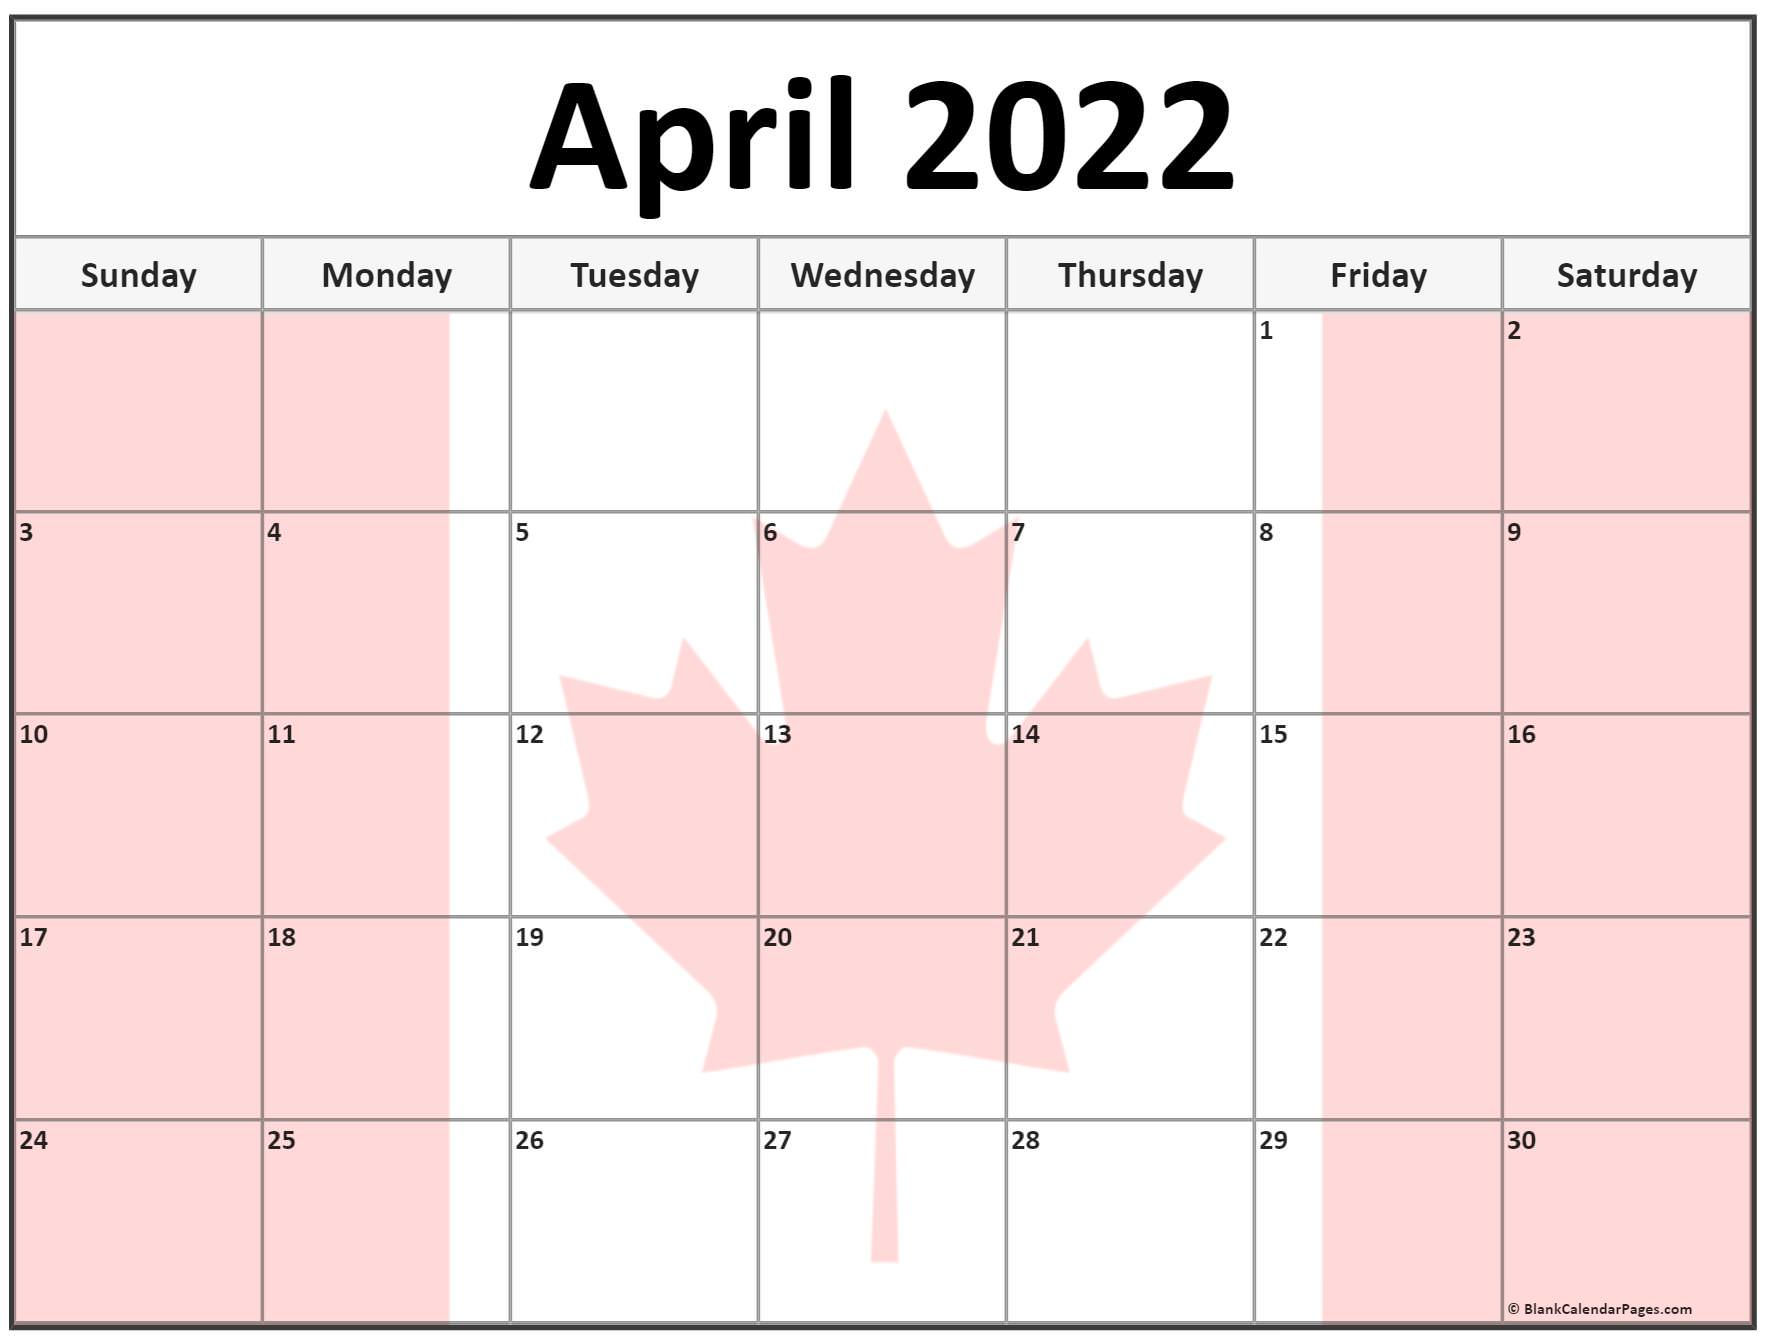 Collection of April 2022 photo calendars with image filters.